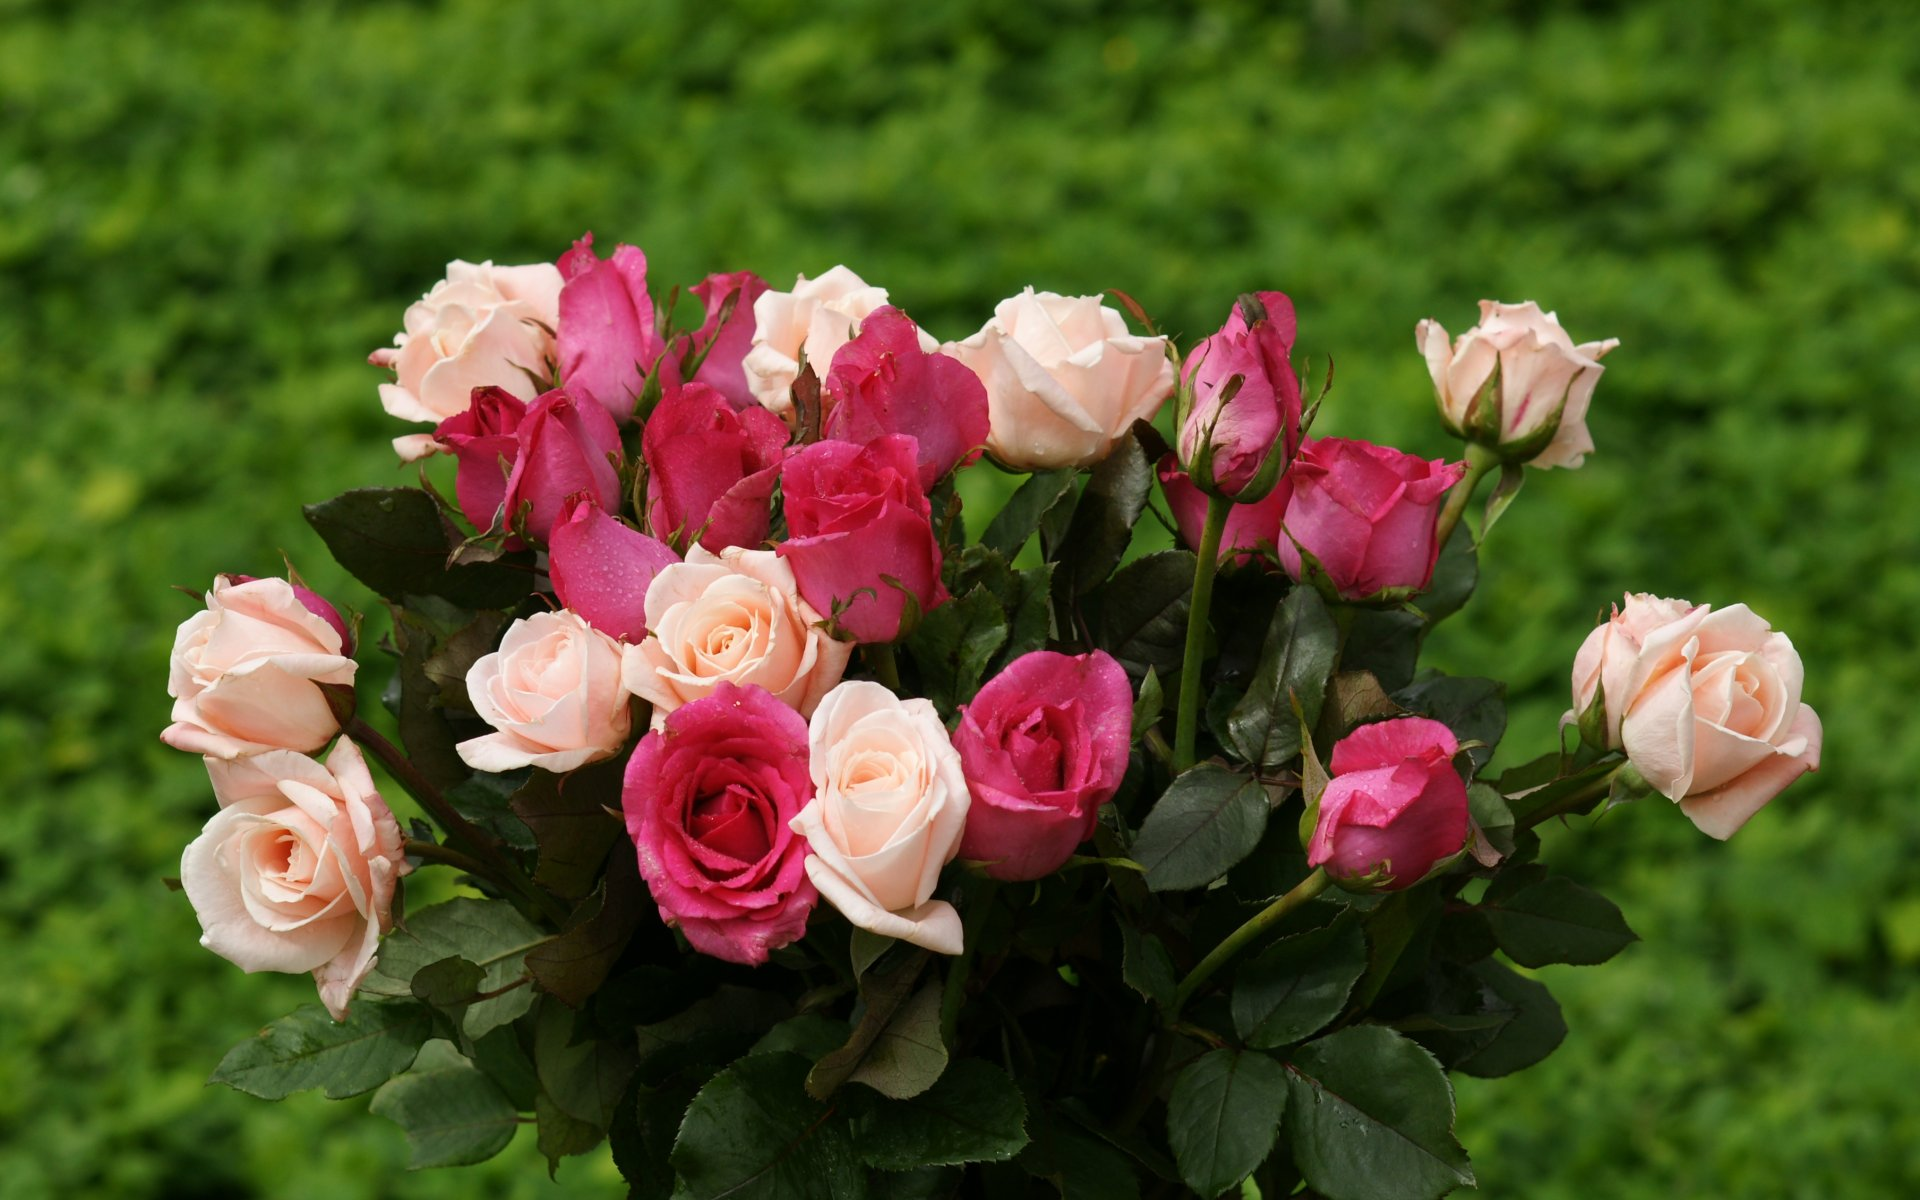 rose bouquet widescreen wallpaper